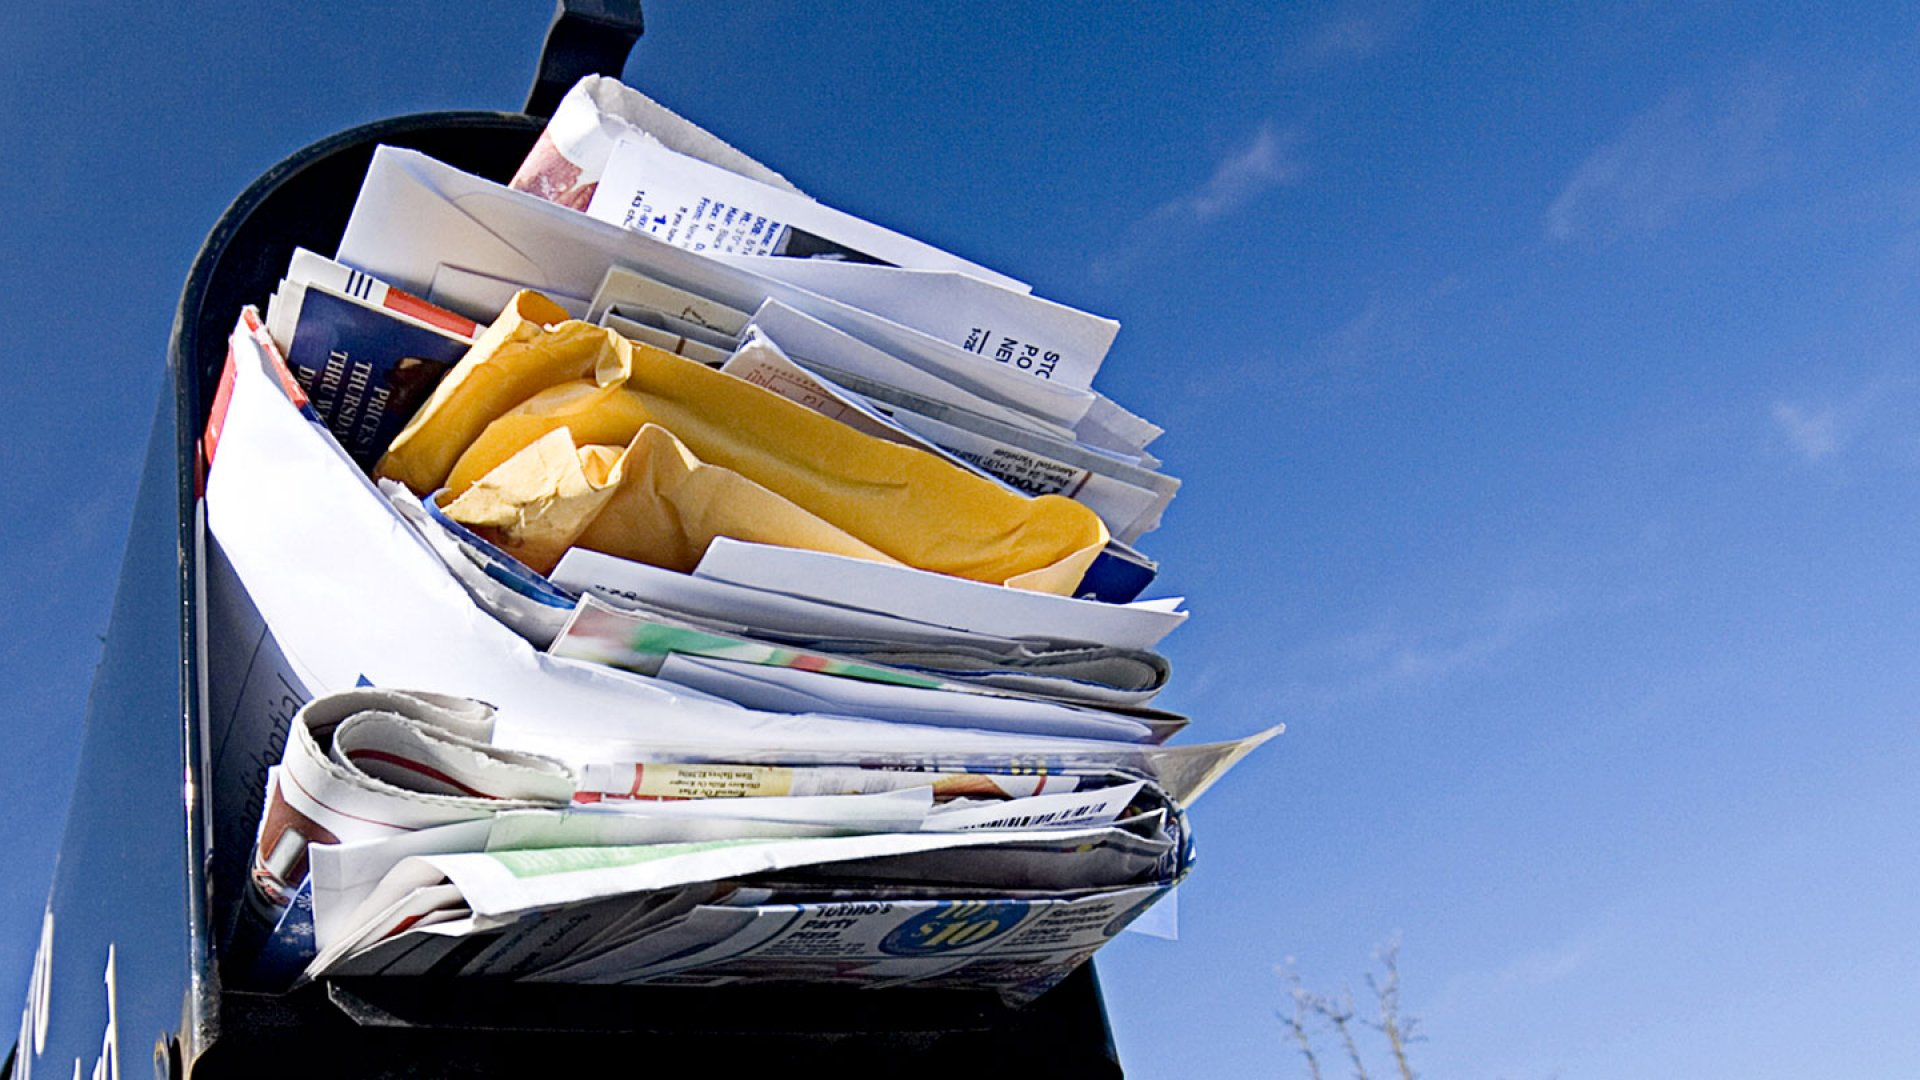 7 Easy Ways to Reduce Email Overload